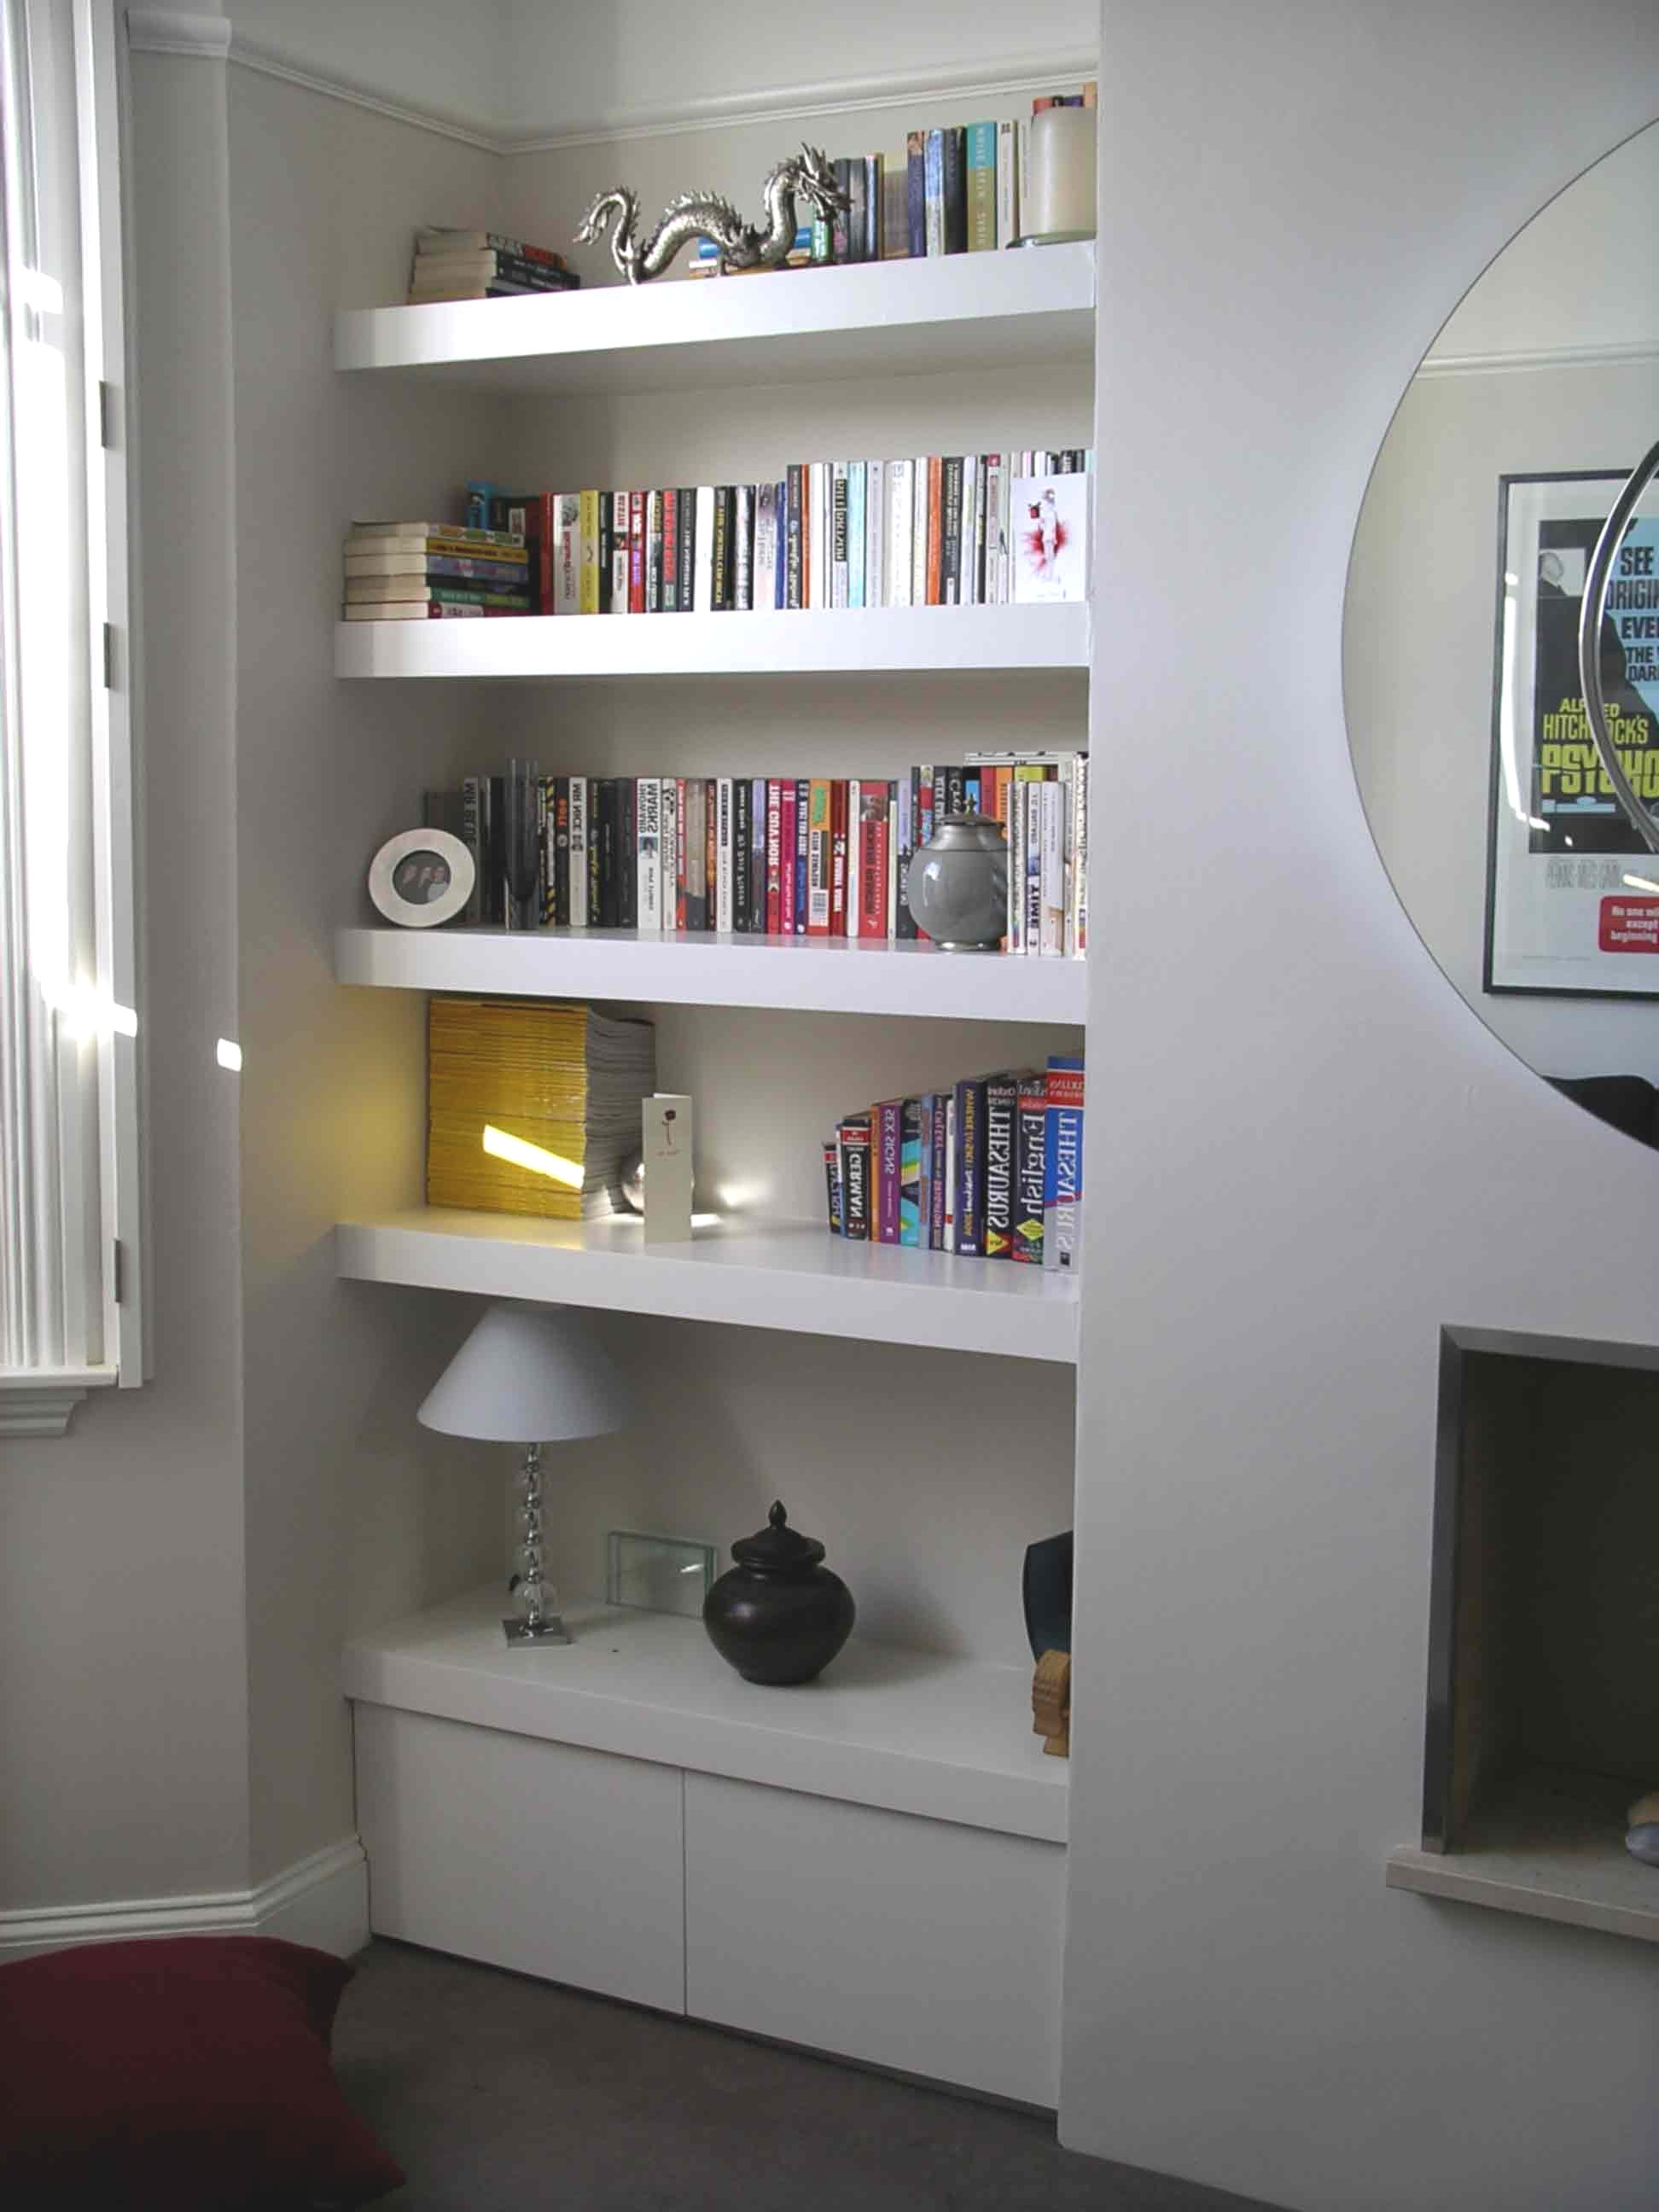 Alcove Bookcases In Most Up To Date Low Bookcases And Shelves, Floating Shelves Alcove Wall Alcove (View 15 of 15)